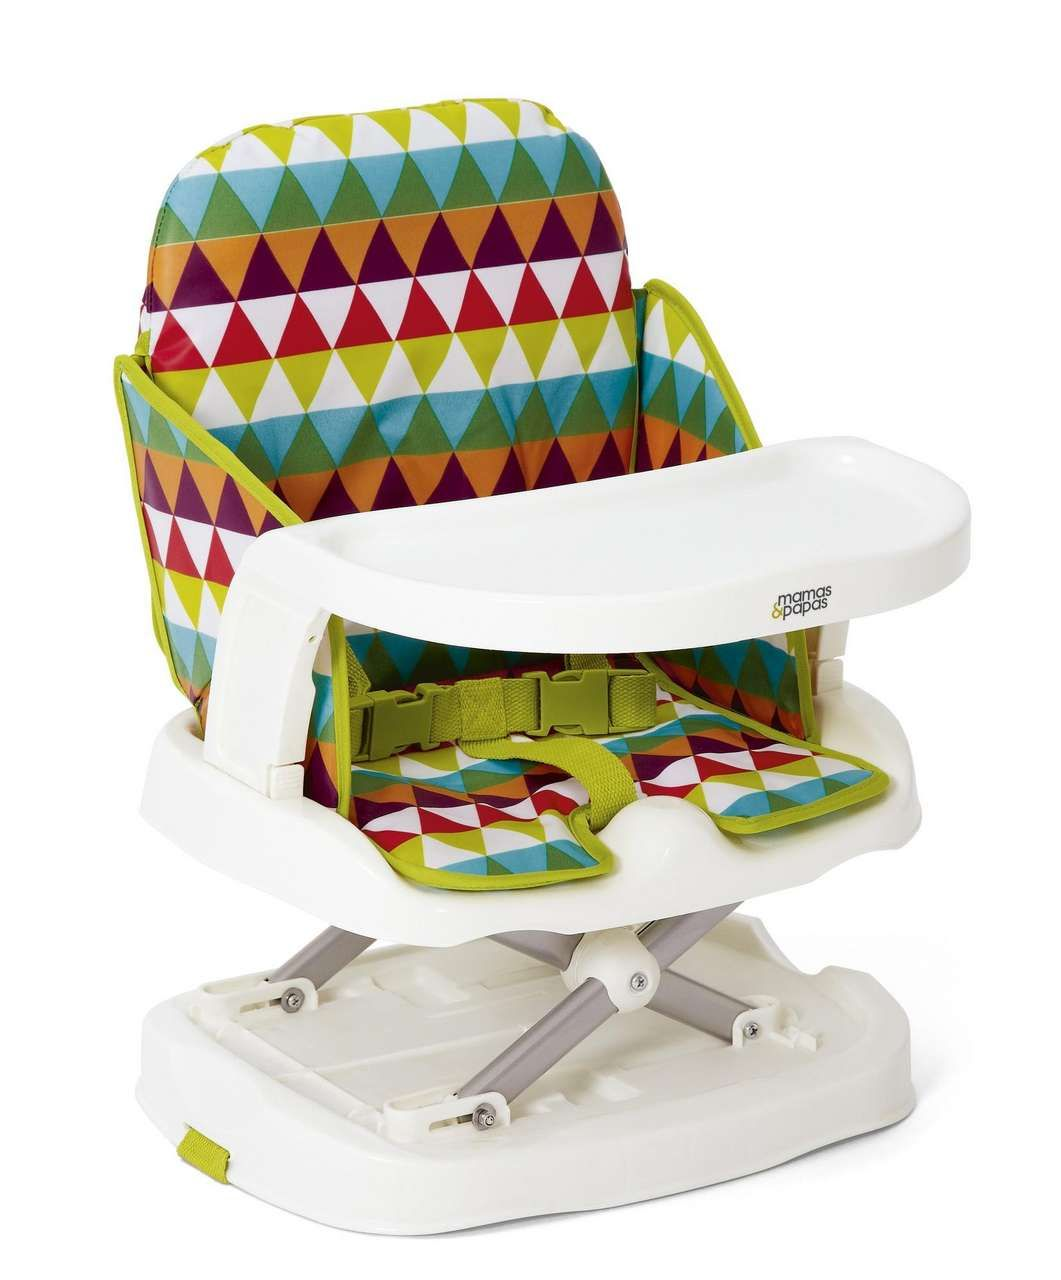 OXO Tot Sprout High Chair Gray/Gray BABY STUFF Baby